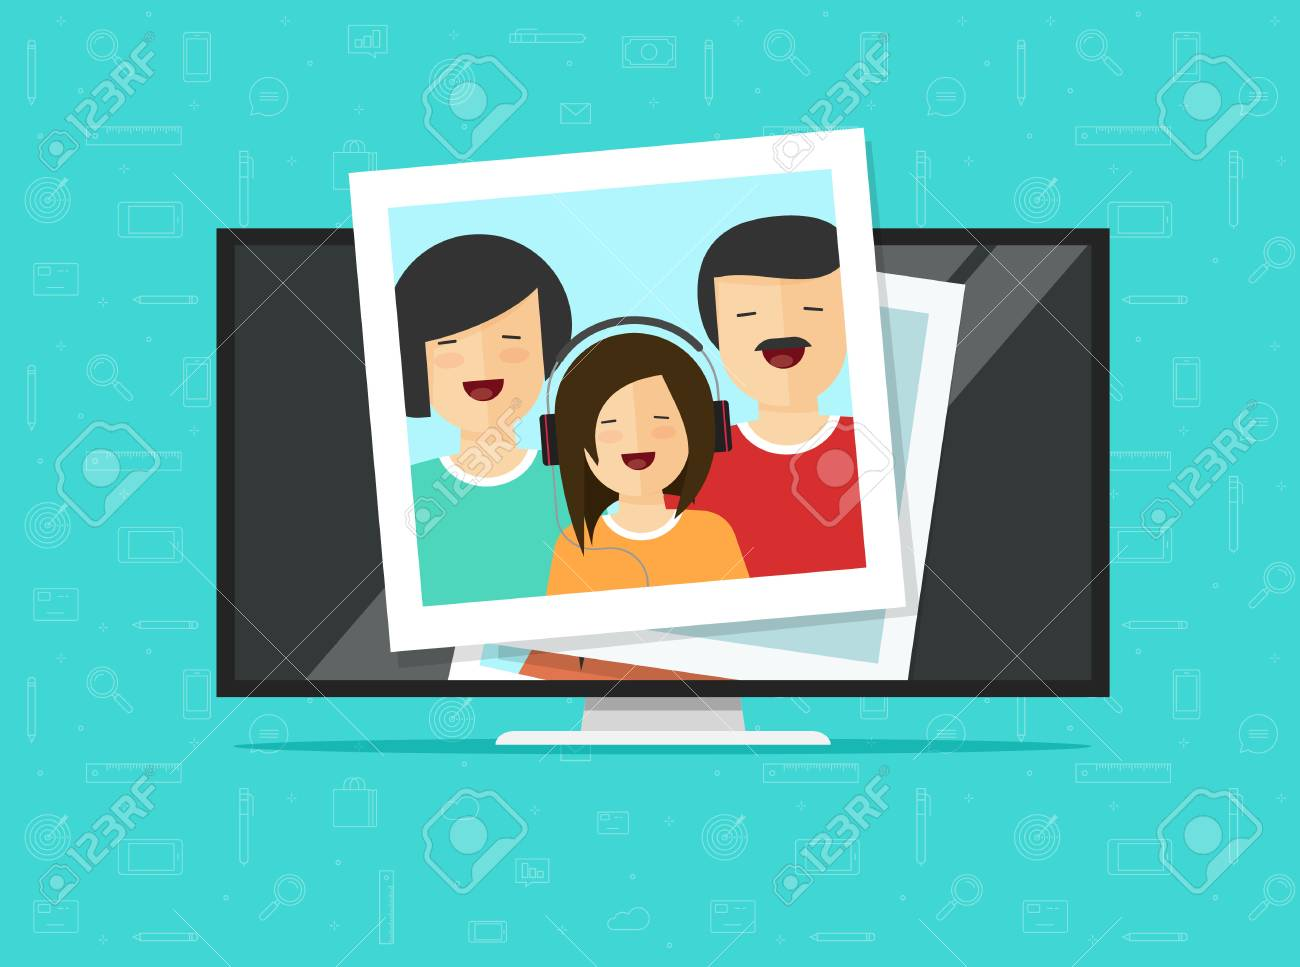 TV flat screen with photo cards vector illustration, flat cartoon computer lcd monitor or led television display showing photos, idea or media player, digital photography album gallery online - 97180237